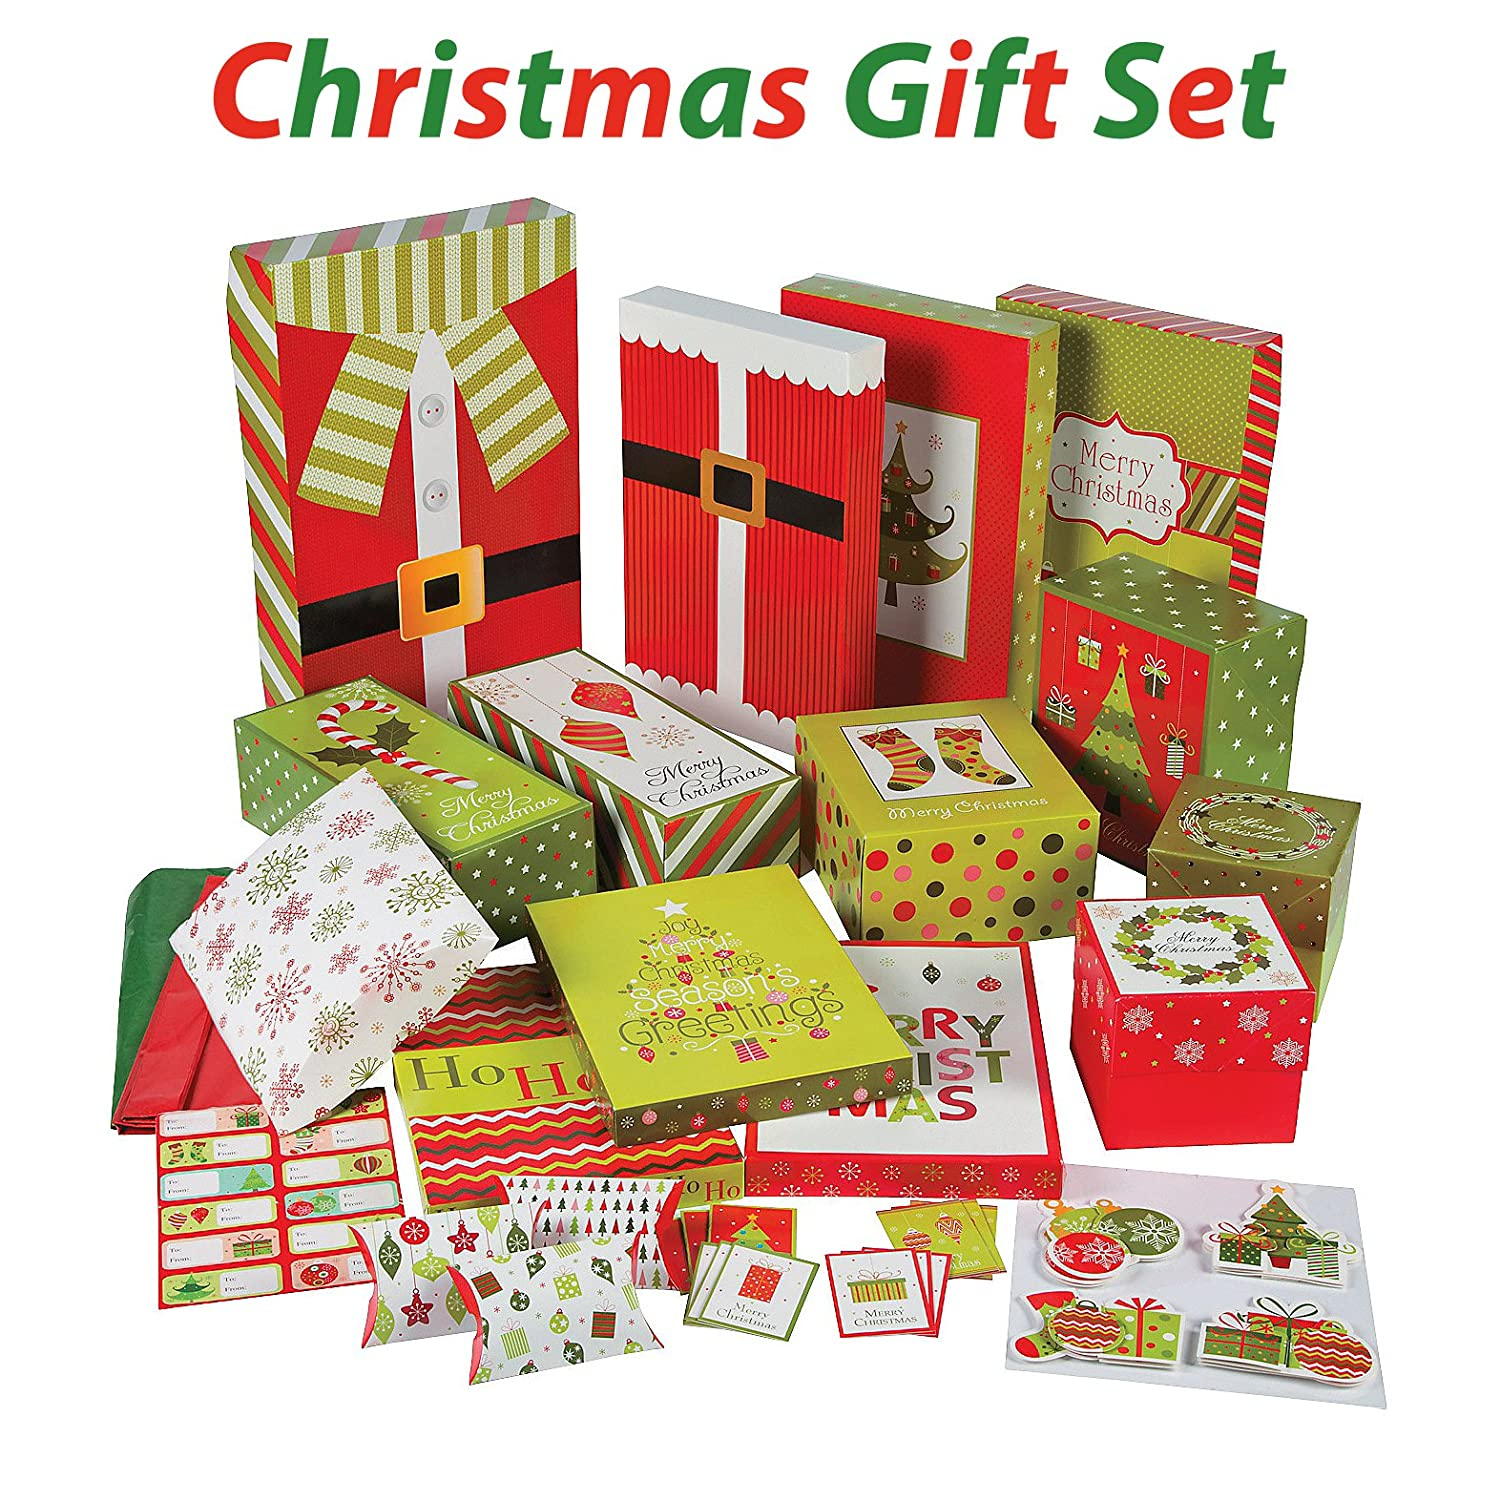 Christmas Gift Wrapping set, Includes gift boxes, tissue, tags, gift card holders, gift tags, 67 Pcs, By 4E' s Novelty, 4E' s Novelty